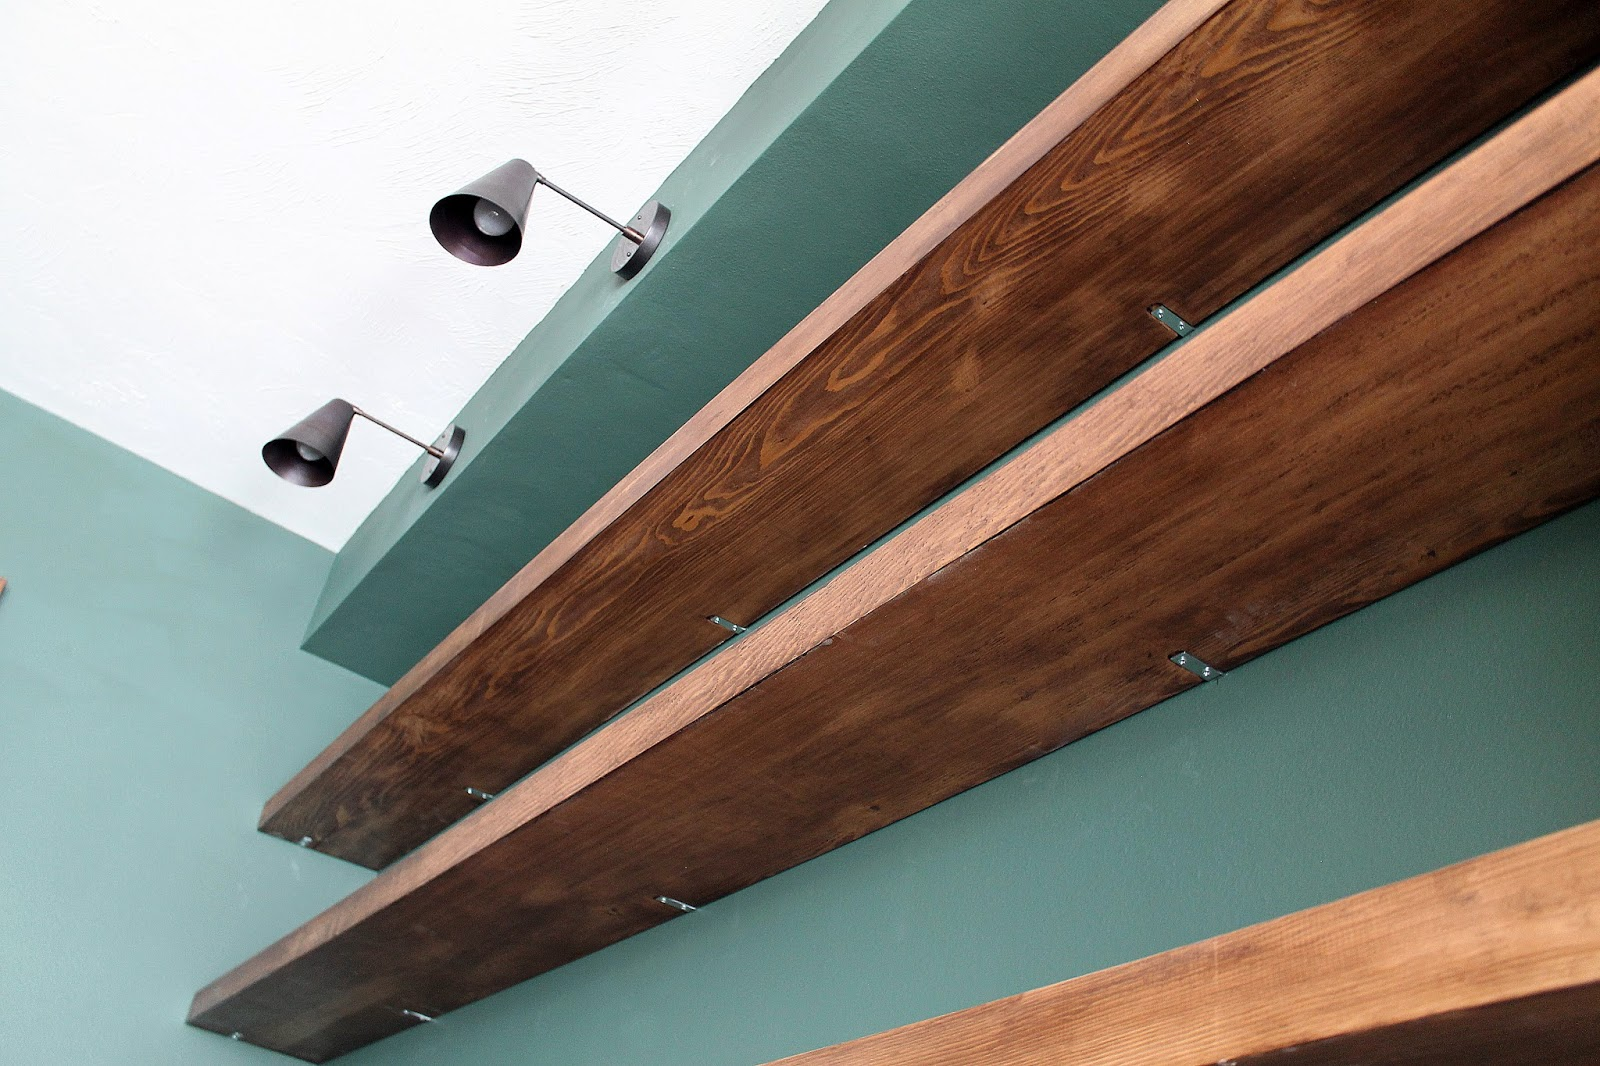 diy solid wood wall shelves chris loves julia img floating without brackets mounting something heavy the wooden kitchen shelf with hanging hooks granite bar top support edge best